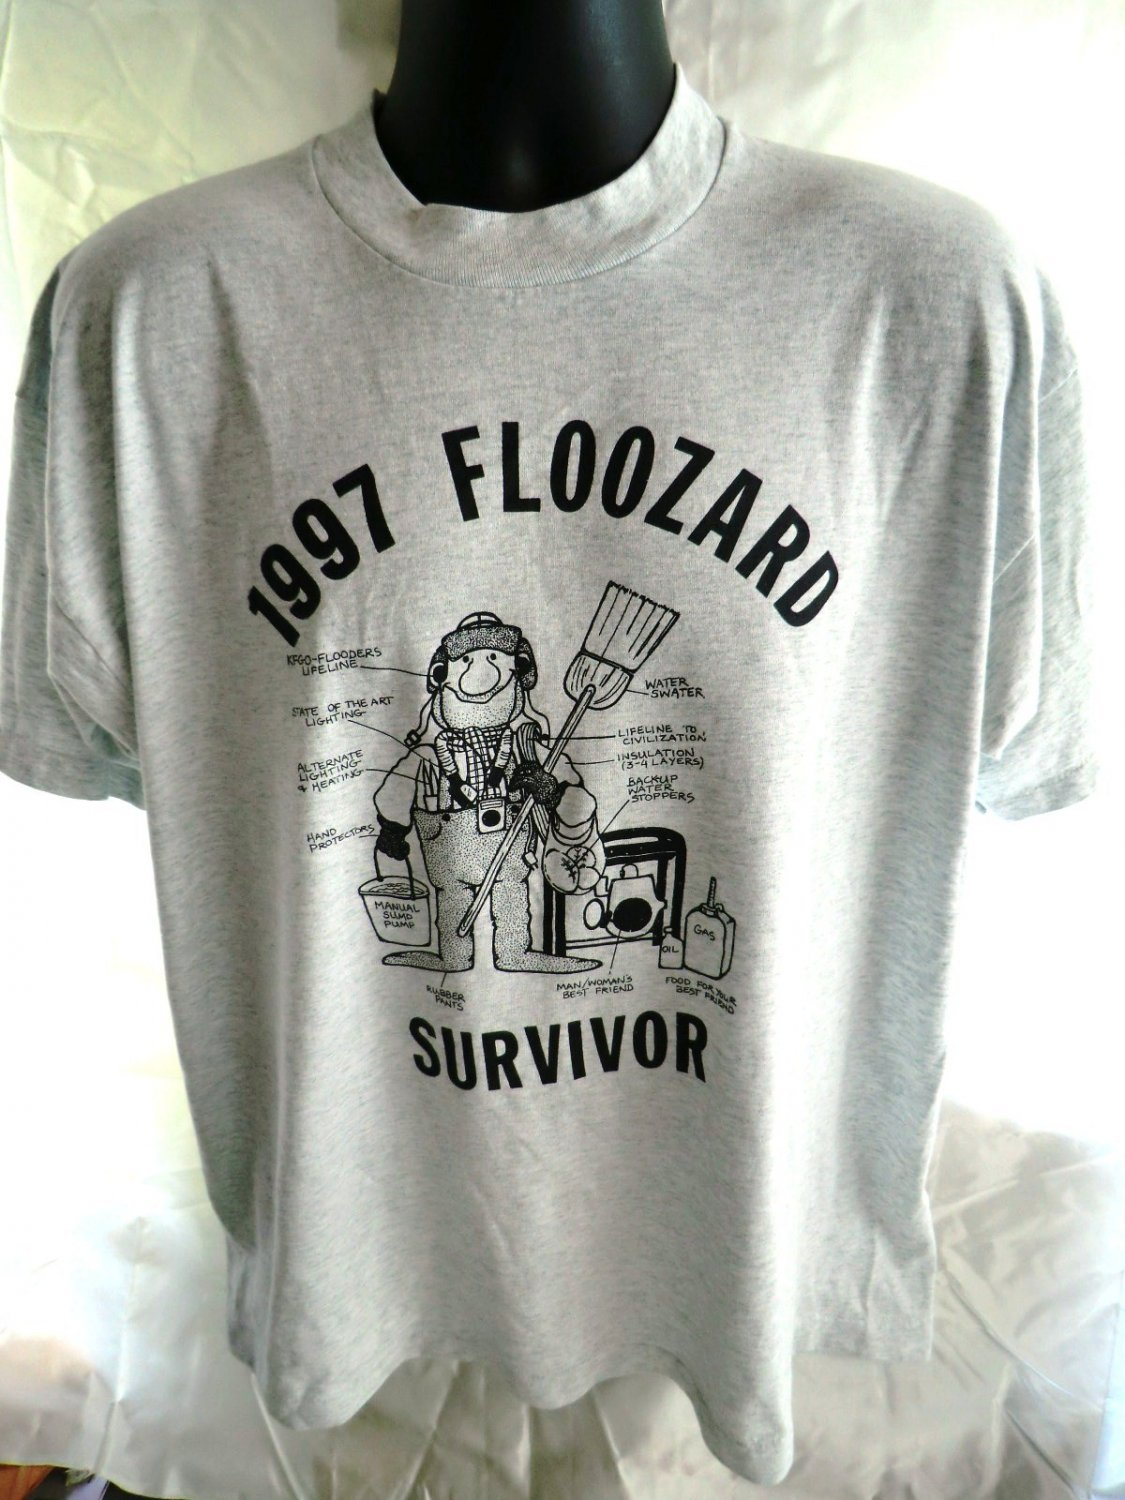 Funny North Dakota Size XL T-Shirt Survivor Floozard (Flood) ND